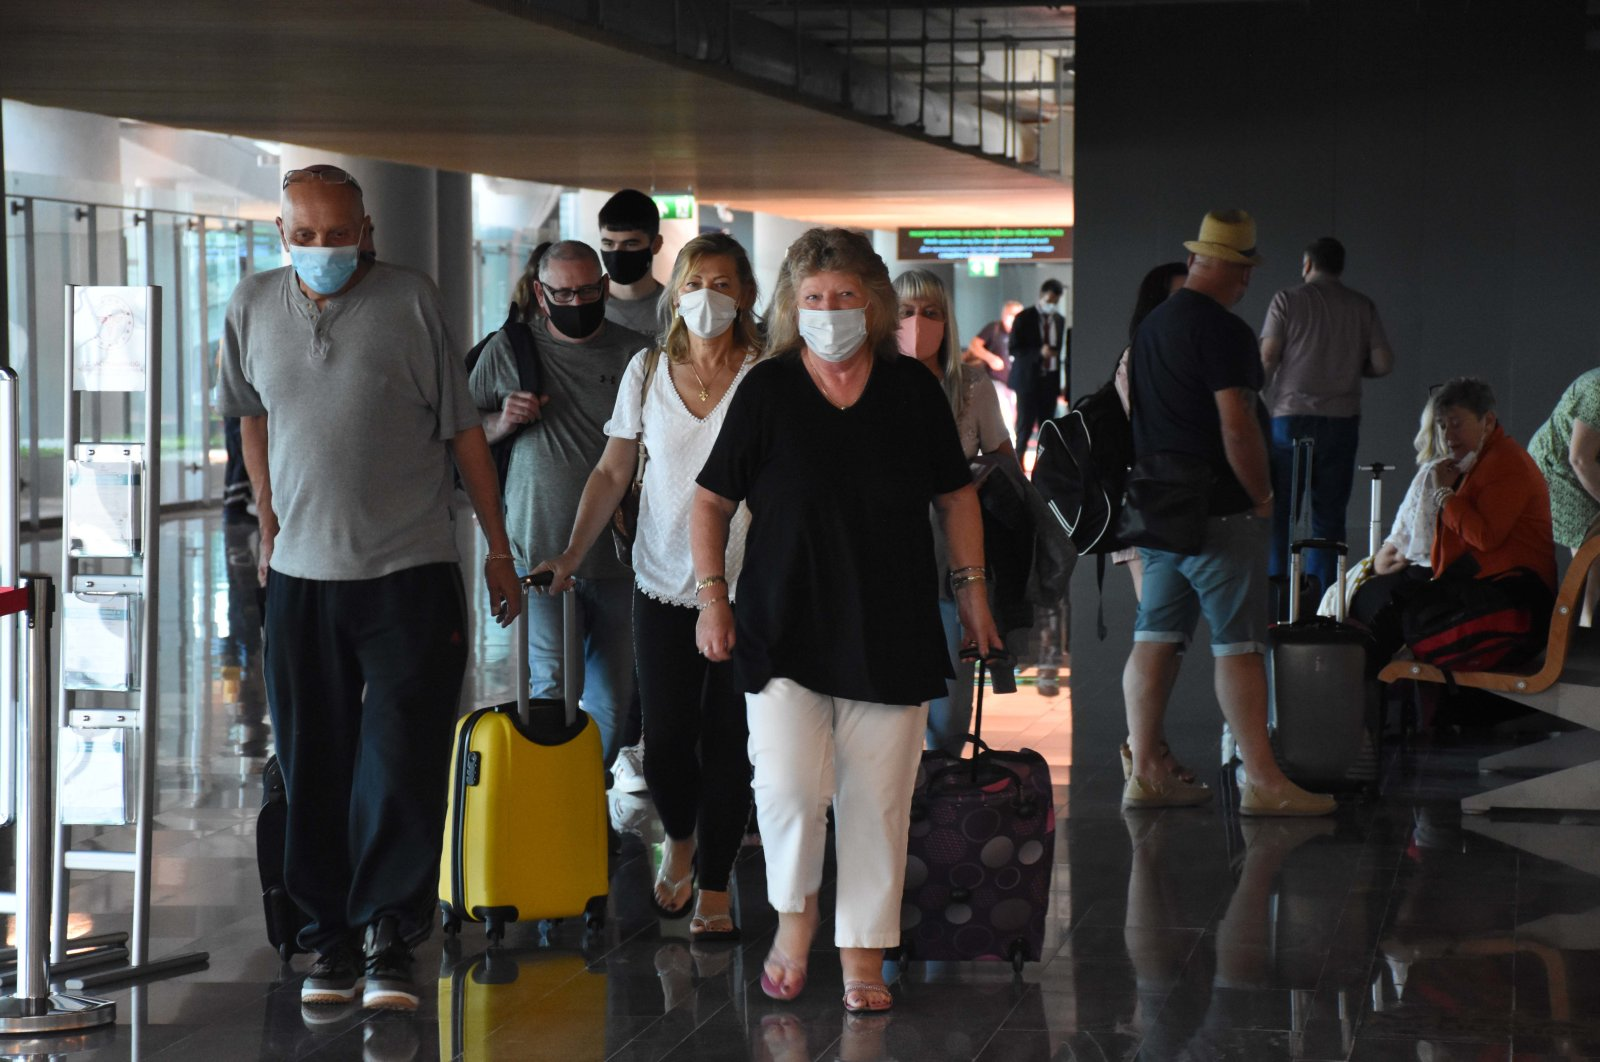 British tourists are seen arriving at Milas-Bodrum Airport in southern Turkey, July 17, 2020. (AA Photo)